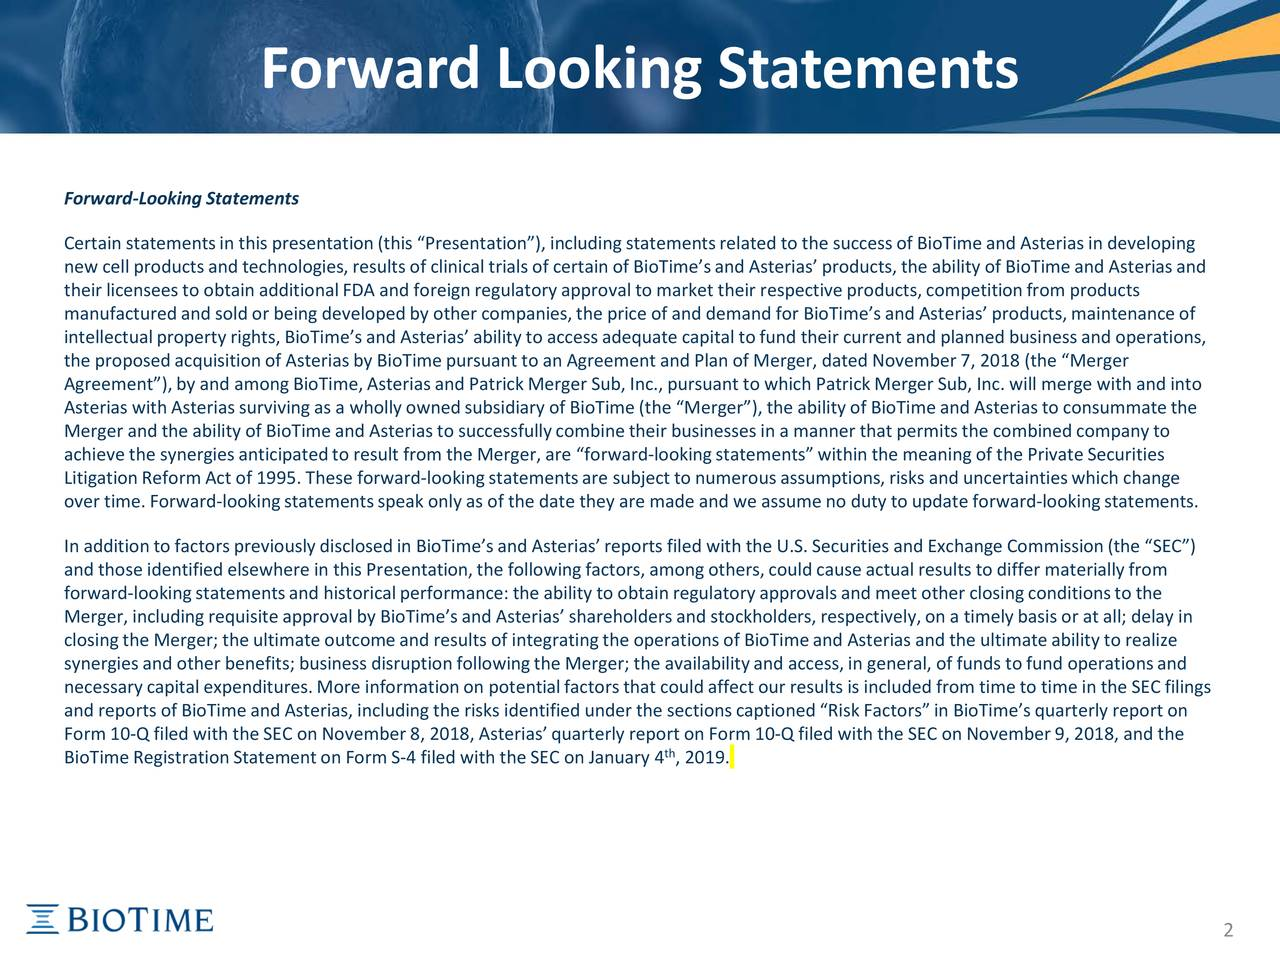 "Forward-Looking Statements Certain statements in this presentation (this ""Presentation""),including statements related to the success of BioTime and Asterias in developing new cell products and technologies, results of clinical trials of certain of BioTime'sand Asterias' products, the ability ofBioTime and Asterias and their licensees to obtain additional FDA and foreign regulatory approval to market their respective products, competim products manufactured and sold or being developed by other companies, the price of and demand for BioTime'sand Asterias' products, miantenance of intellectual property rights,BioTime'sand Asterias' ability to access adequate capital to fund their current and planned business and operations, the proposed acquisition of Asterias by BioTime pursuant to an Agreement and Plan of Merger, dated November7, 2018 (the ""Merger Agreement""), by and among BioTime, Asterias and Patrick Merger Sub, Inc., pursuant to which Patrick Merger Sub, Inc. will mergewith and into Asterias with Asterias surviving as a wholly owned subsidiary of BioTime (the ""Merger""), the ability of BioTime and Asteriasto consummate the Merger and the ability of BioTime and Asterias to successfullycombine their businesses in a manner that permits the combinedcompany to achieve the synergies anticipatedto result from the Merger,are ""forward-looking statements"" within the meaning of the Private Securities Litigation Reform Act of1995. These forward-looking statements are subject to numerous assumptions, risks and uncertainties which change over time. Forward-lookingstatements speak only as of the date they are made and we assume no duty to update forward-looking statements. In addition to factors previously disclosed in BioTime's and Asterias' reports filed with the U.S. Securities and Eo mission (the ""SEC"") and those identified elsewhere in this Presentation, the following factors, among others, could cause actual resultr materially from forward-looking statements and historical performance: the ability to obtain regulatory approvals and meet other closing conditions to the Merger, including requisite approval by BioTime's and Asterias' shareholders and stockholders, respectively,on a timely basis or at all; delay in closing the Merger; the ultimate outcome and results of integrating the operations of BioTimeand Asterias and the ultimate abiilty to realize synergies and other benefits; business disruption followingthe Merger; the availability and access, in general, of funds tofund operations and necessary capital expenditures. More information on potential factors that could affect our results is included from time totime in the SEC filings and reports of BioTime and Asterias, including the risks identified under the sectionscaptioned ""Risk Factors"" in BioTime'squarterly report on Form 10-Q filed with the SEC on November8, 2018, Asterias' quarterly report on Form10-Q filed with the SEC on November9, 2018, and the th BioTime Registration Statement on Form S-4 filed with the SEC on January4, 2019. 2"